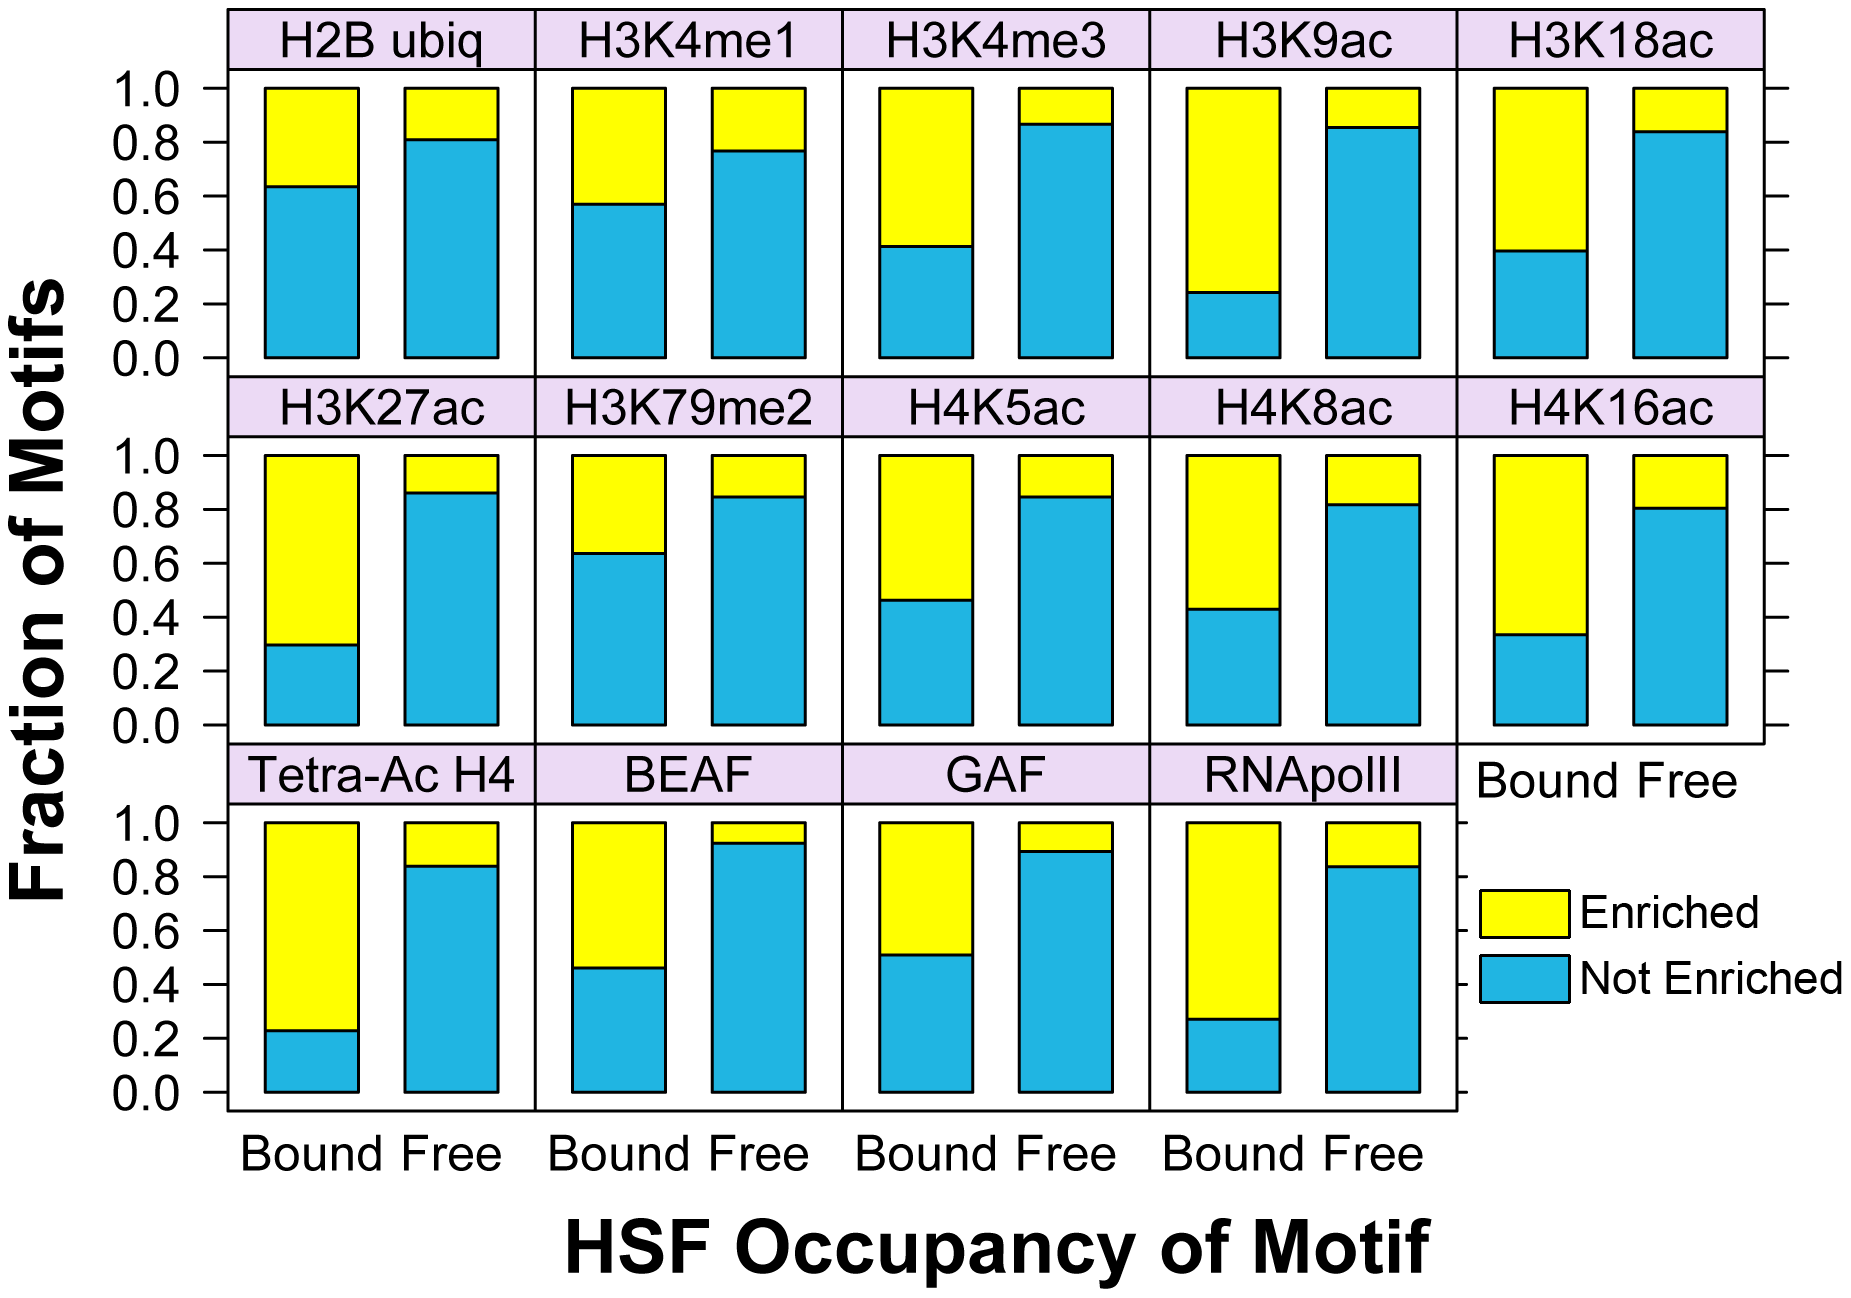 Bound HSE motifs are statistically associated with marks of active chromatin, compared to HSF-free motifs.